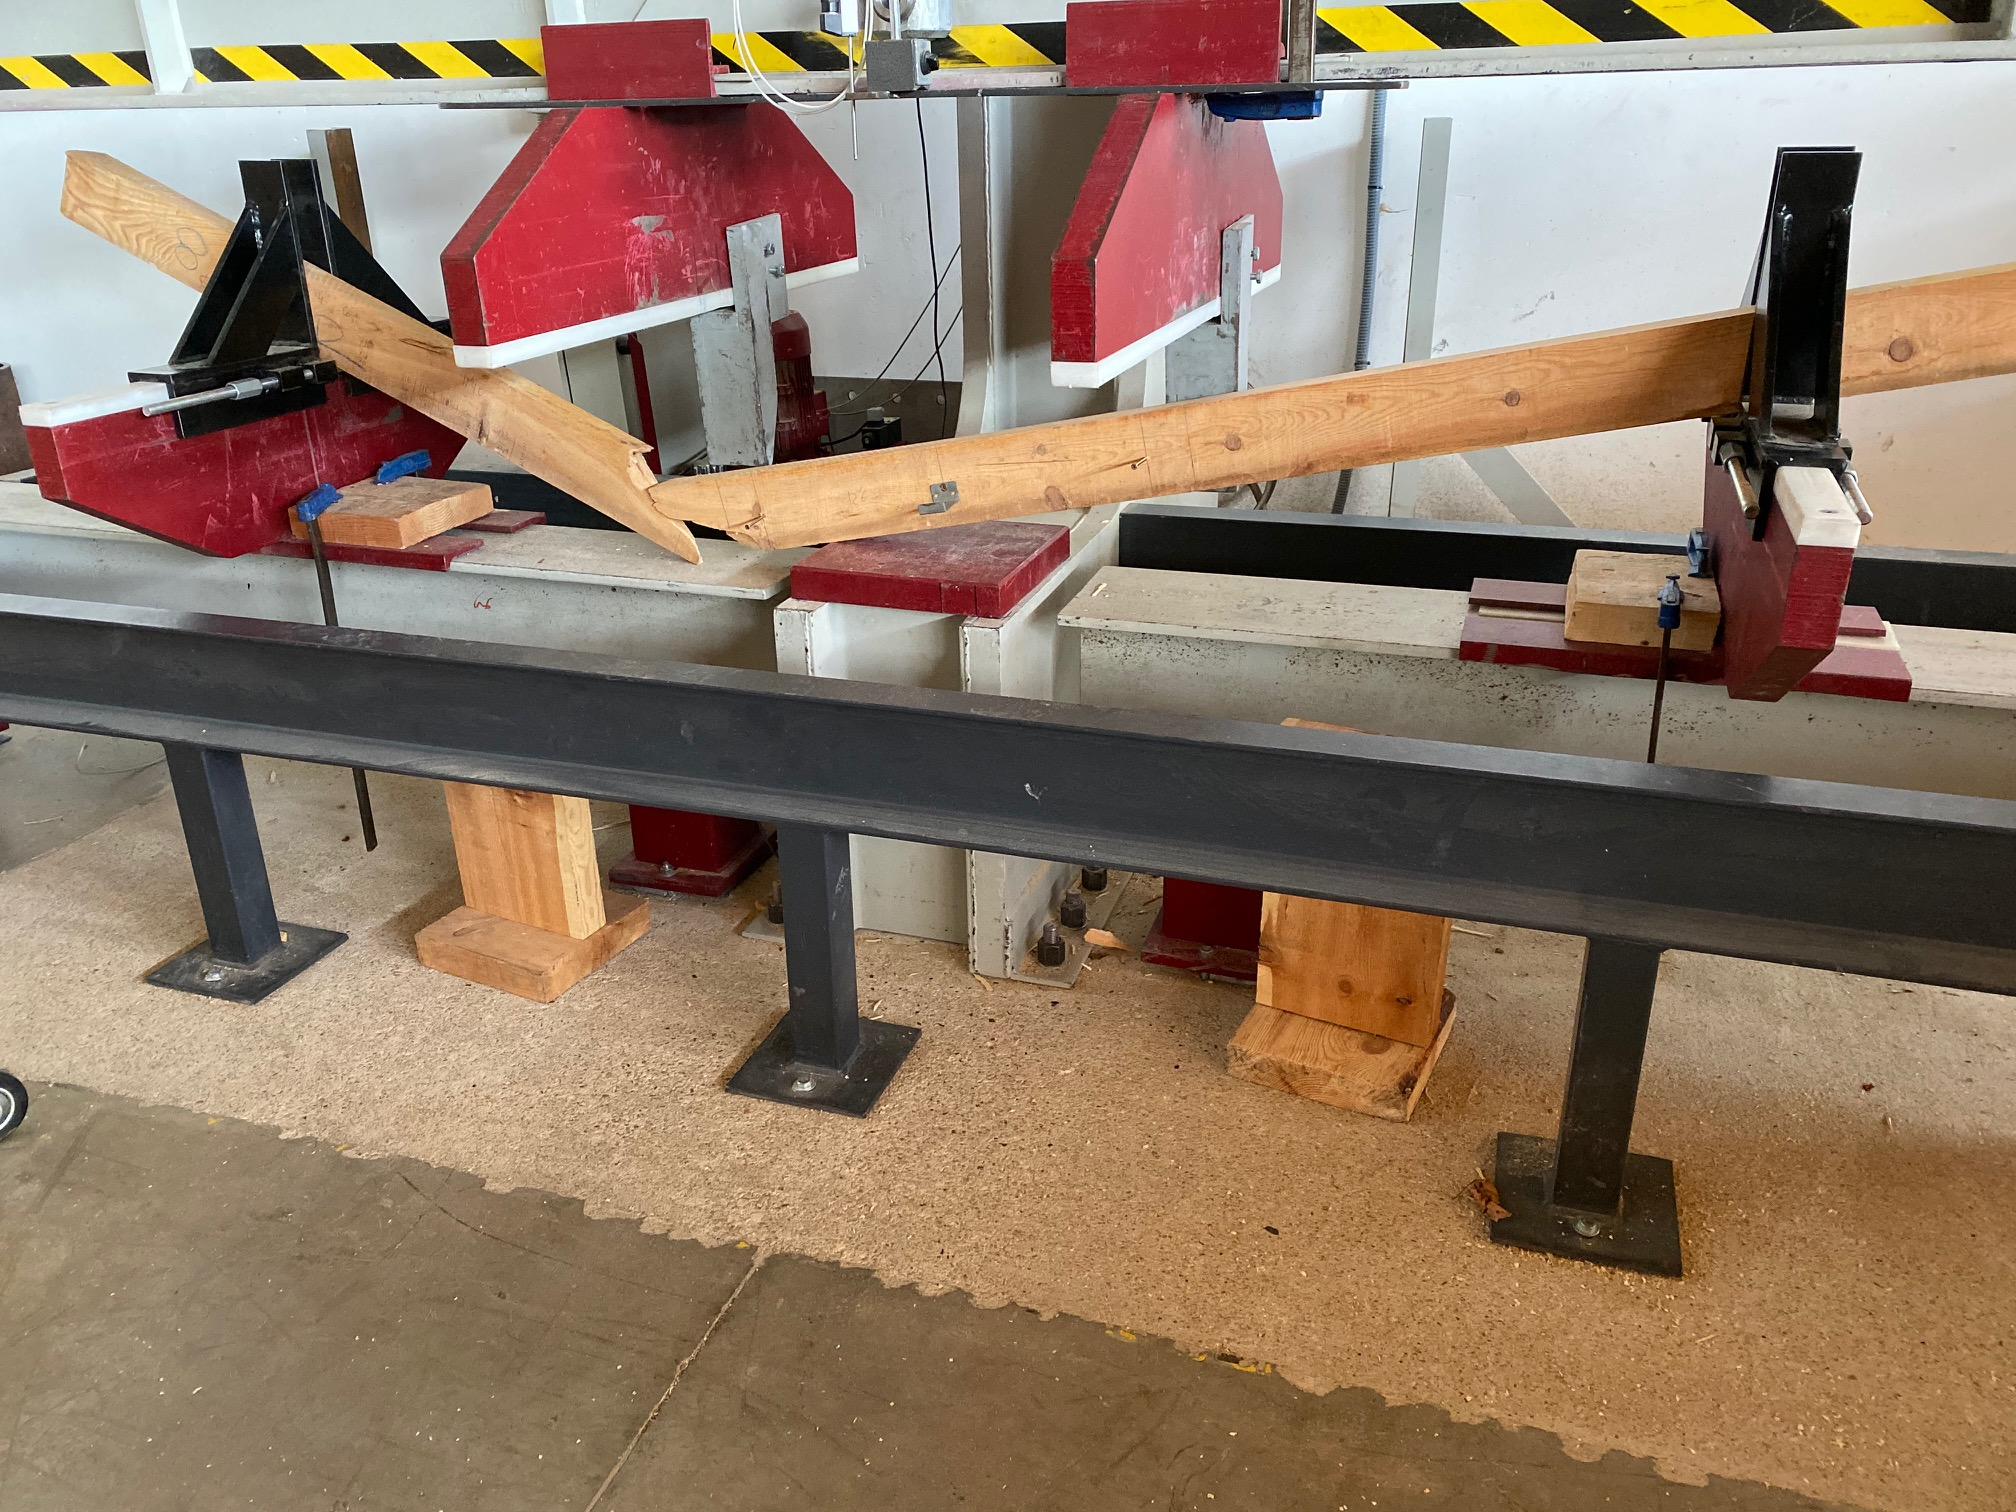 Mechanical testing, edgewise bending strength according to  UNE-EN 408:2011+A1:2012 Timber structures - Structural timber and glued laminated timber - Determination of some physical and mechanical properties.